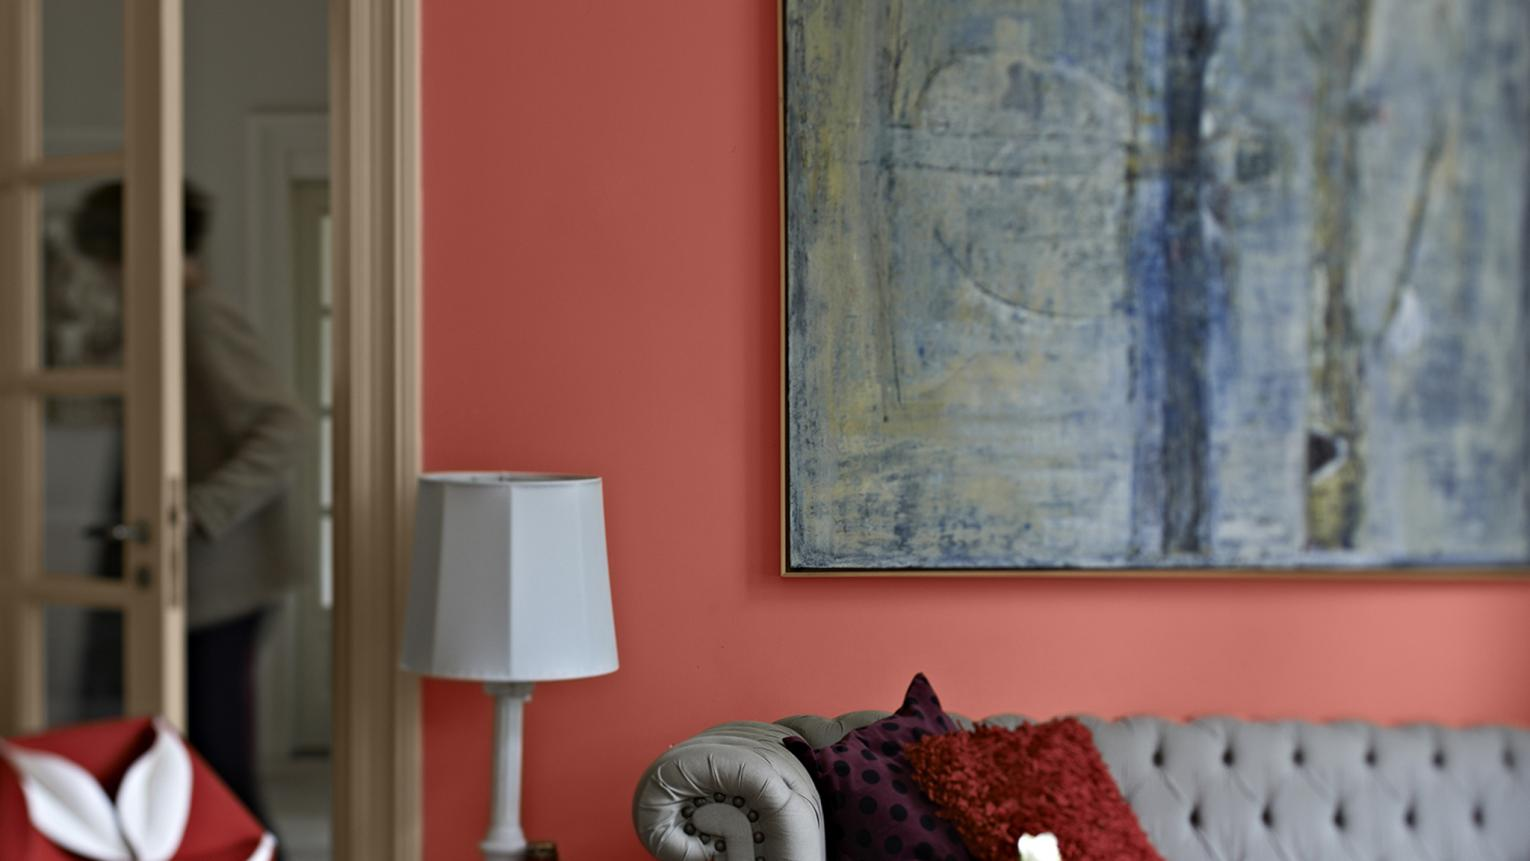 For a passionate living room decor, why not try painting in Dulux bold red. This stylish living space takes its inspiration from Spanish-style interiors.